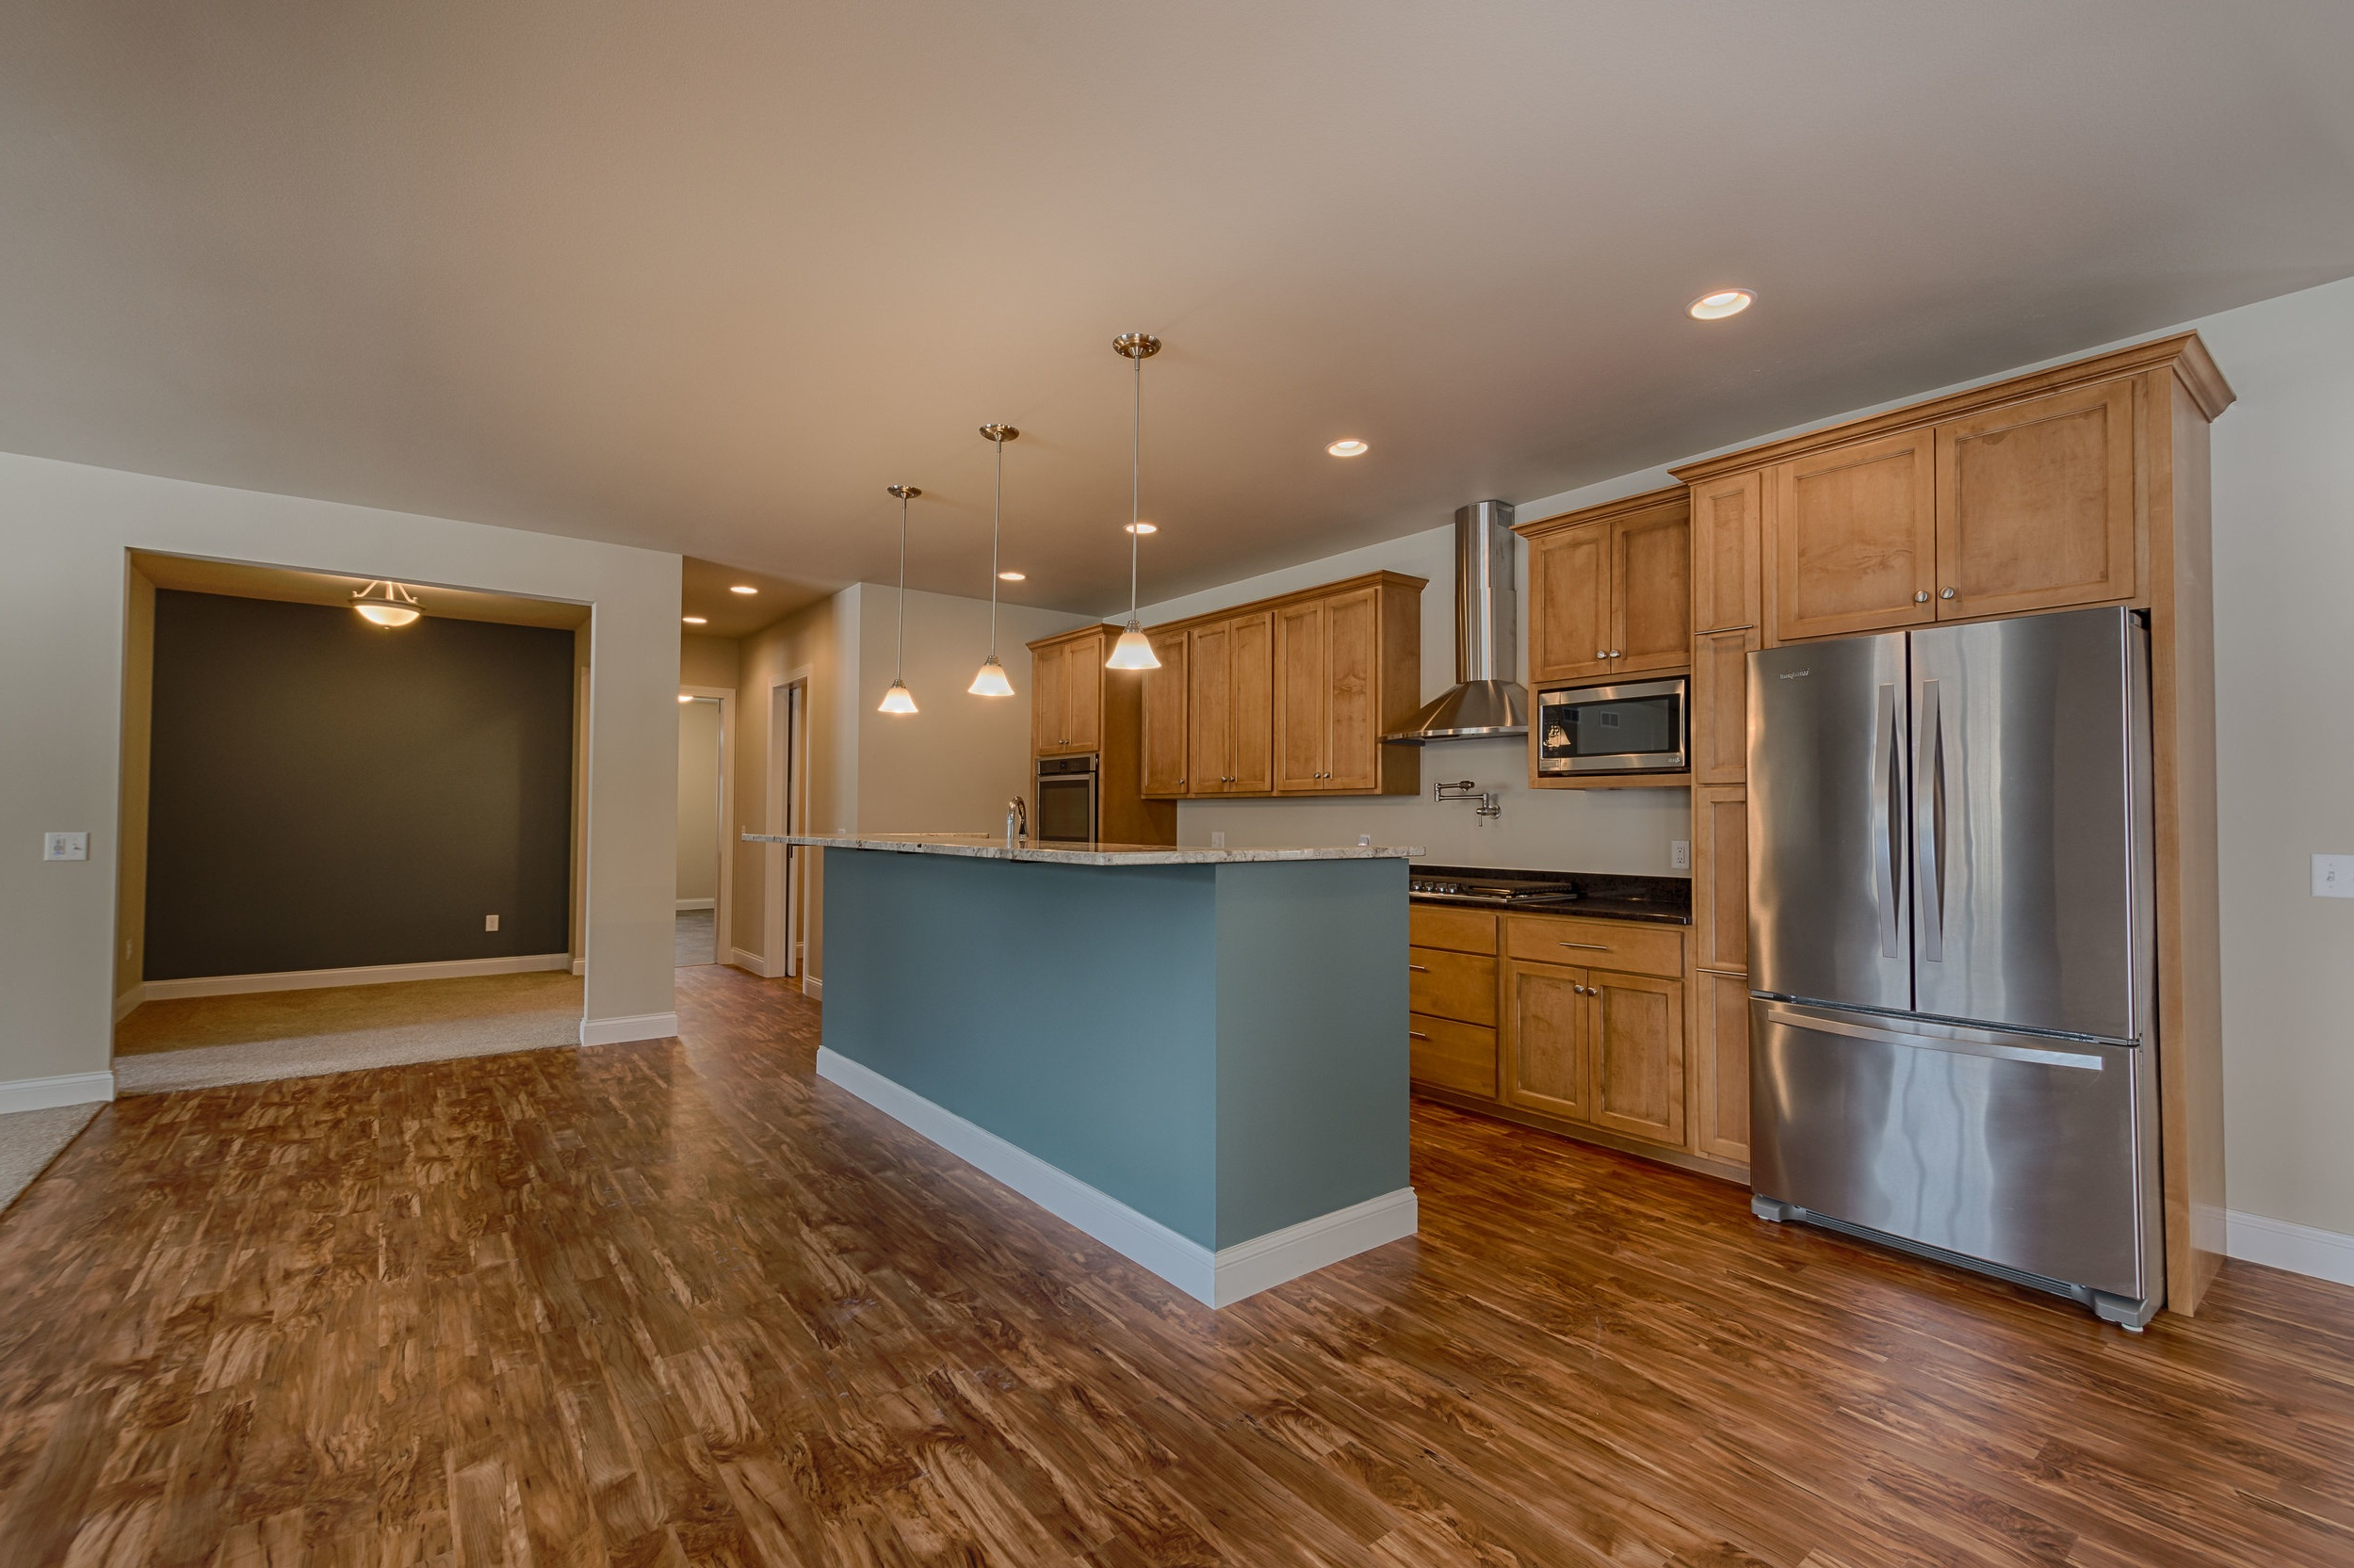 Interior Projects - Home remodeling help improve your happiness and improve comfort for your family, but these upgrades also impact the value of your property.